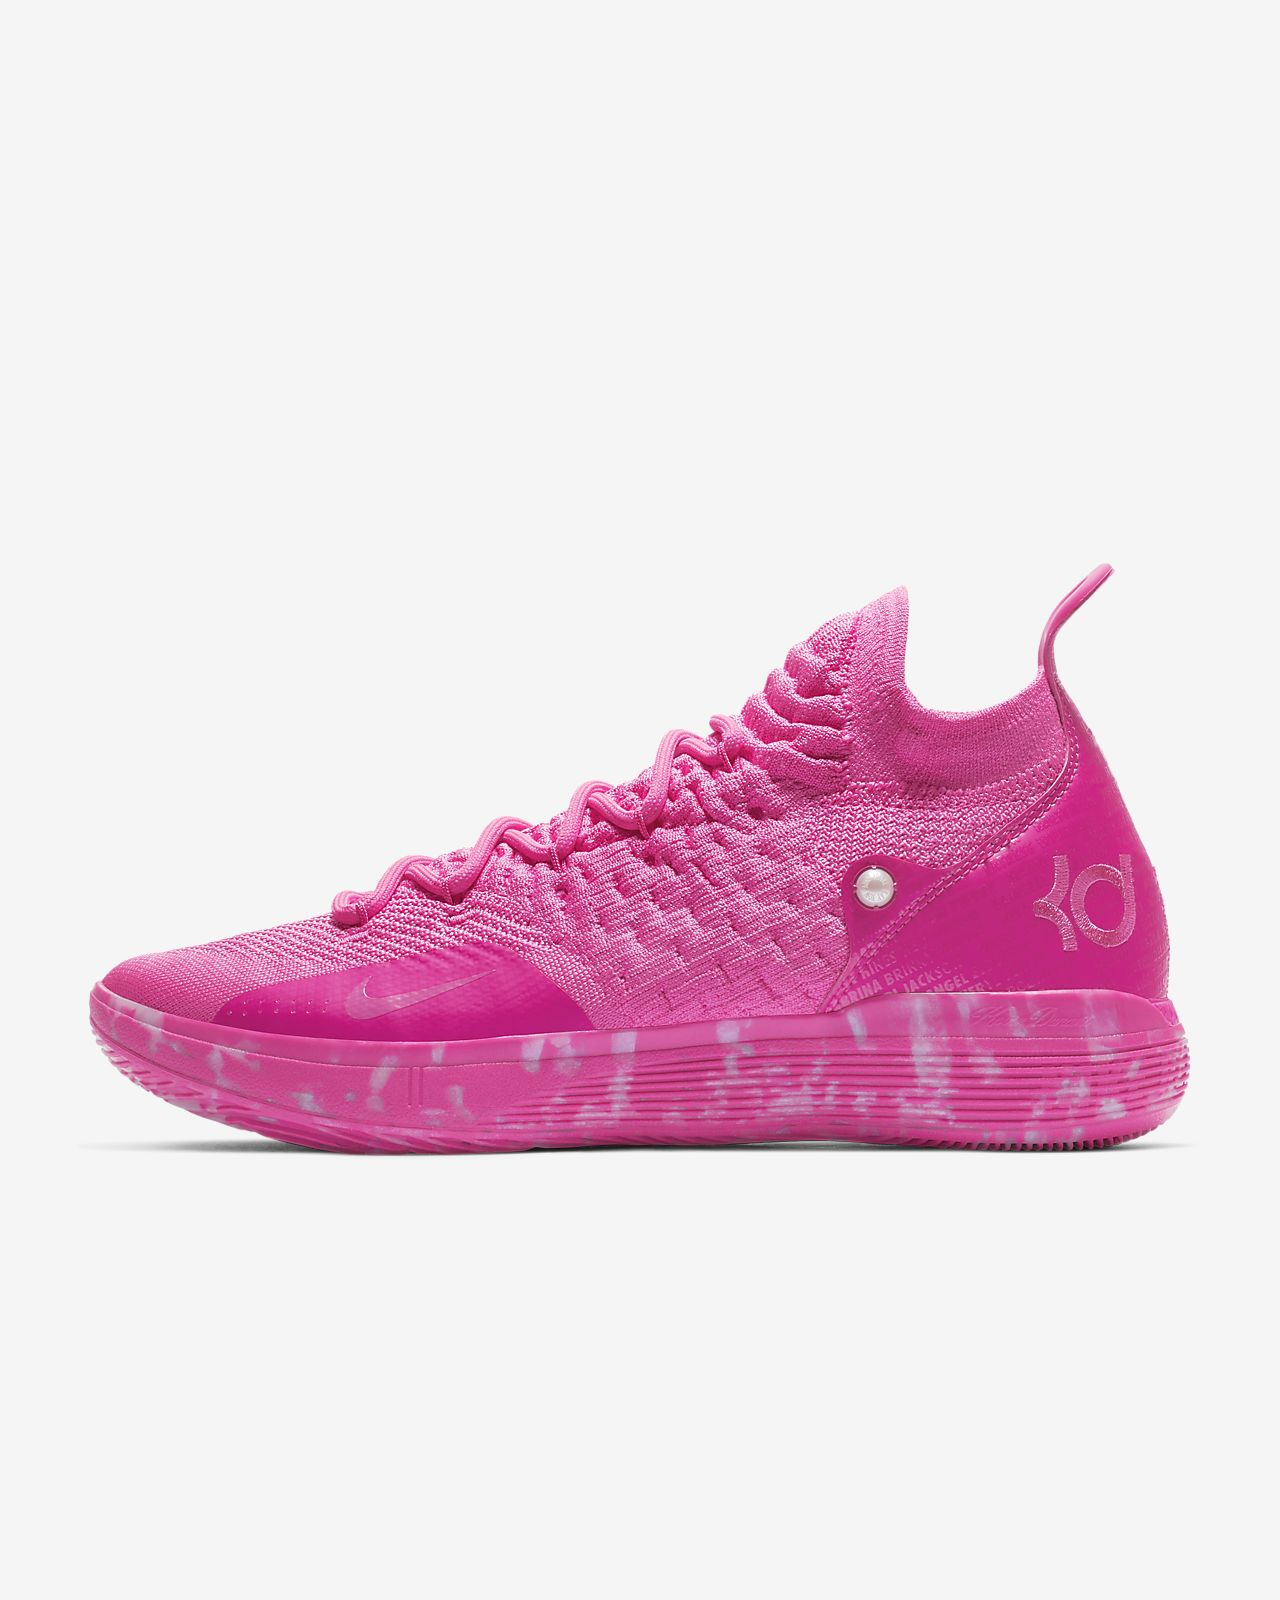 Pearl Aunt Be De Chaussure Nike Basketball Ttzx6f Zoom Kd11 kwn0OP